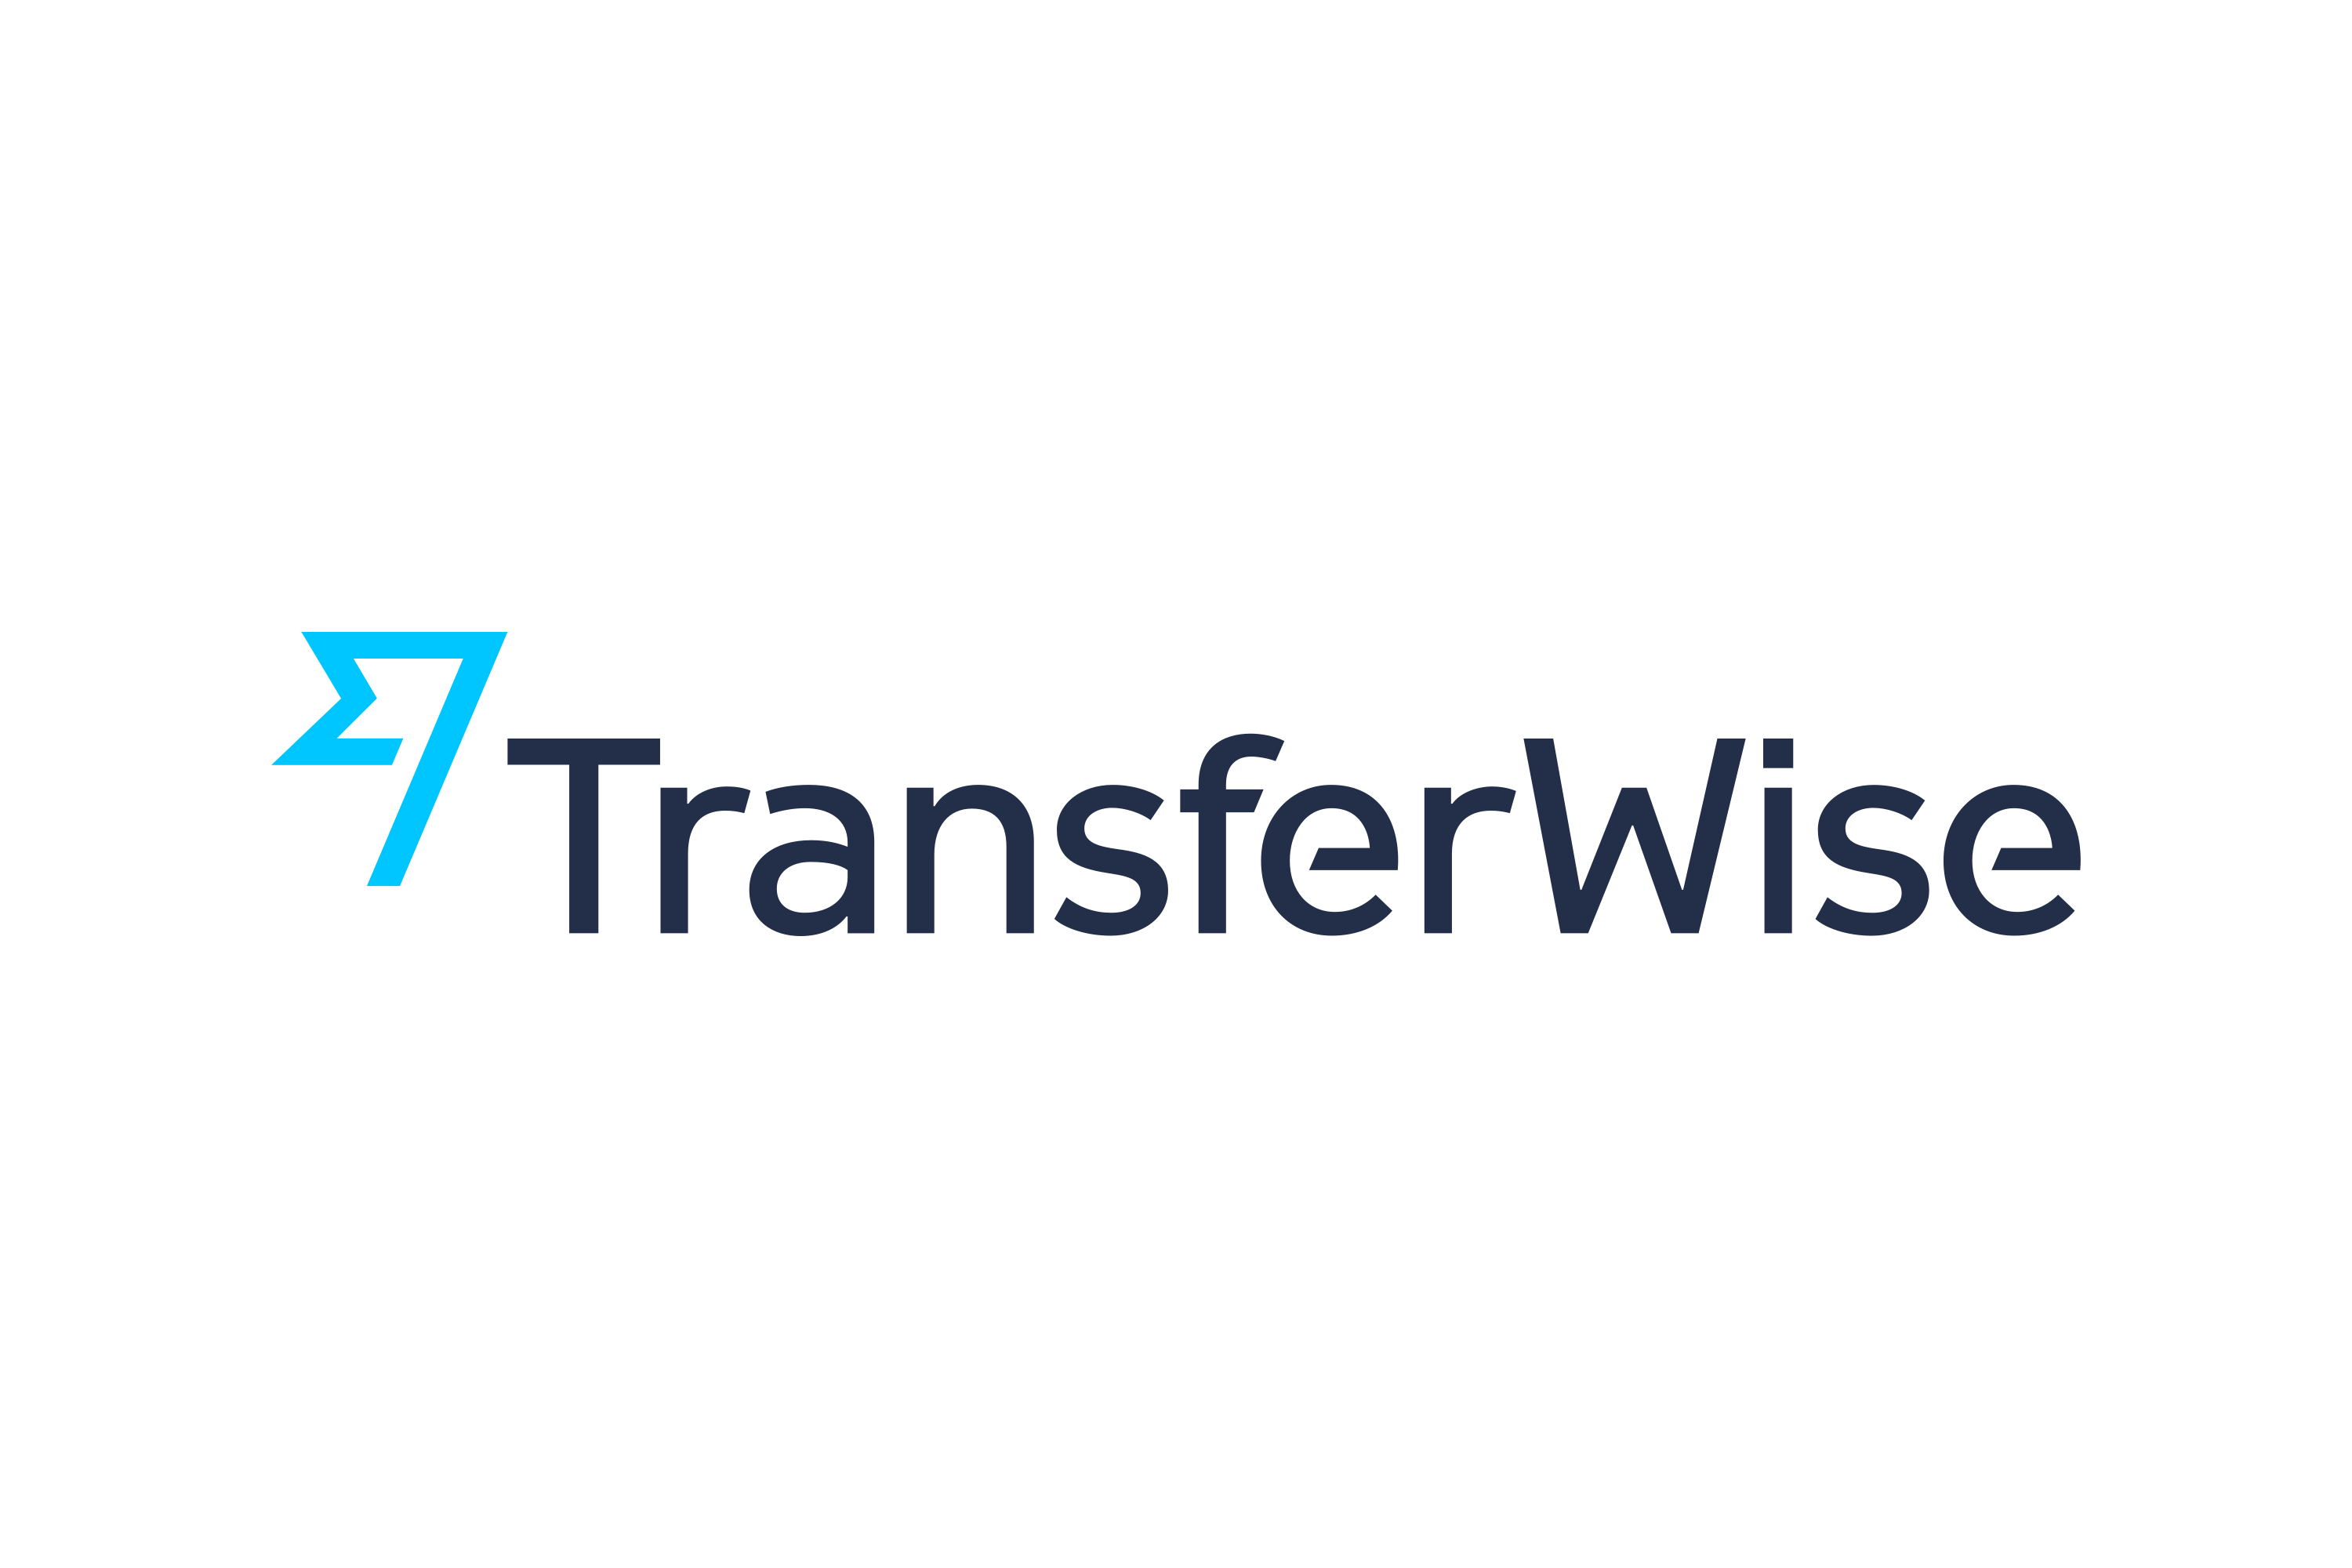 logo for Transferwise in blue